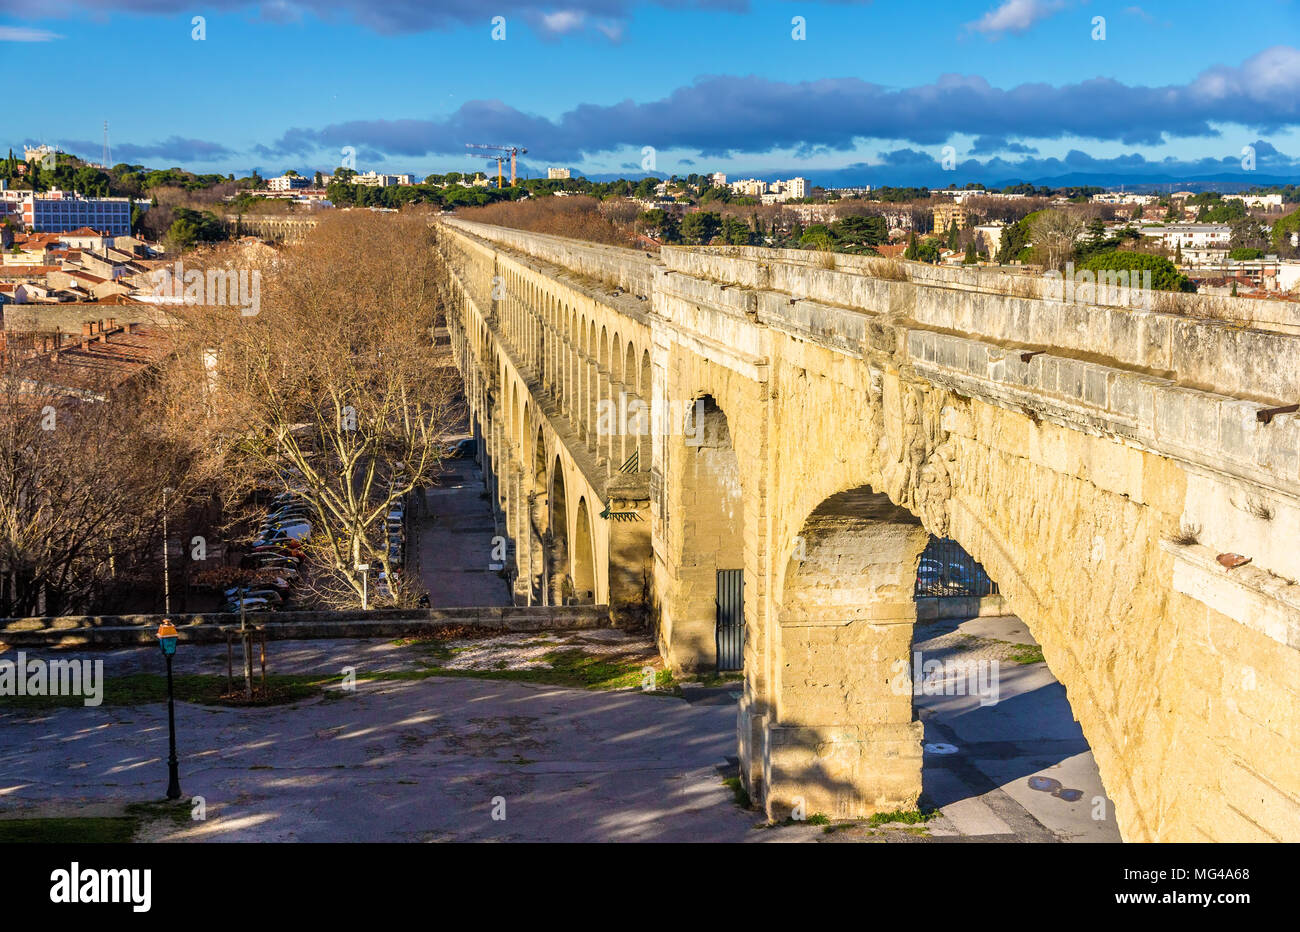 Saint Clement Aqueduct in Montpellier, France Stock Photo